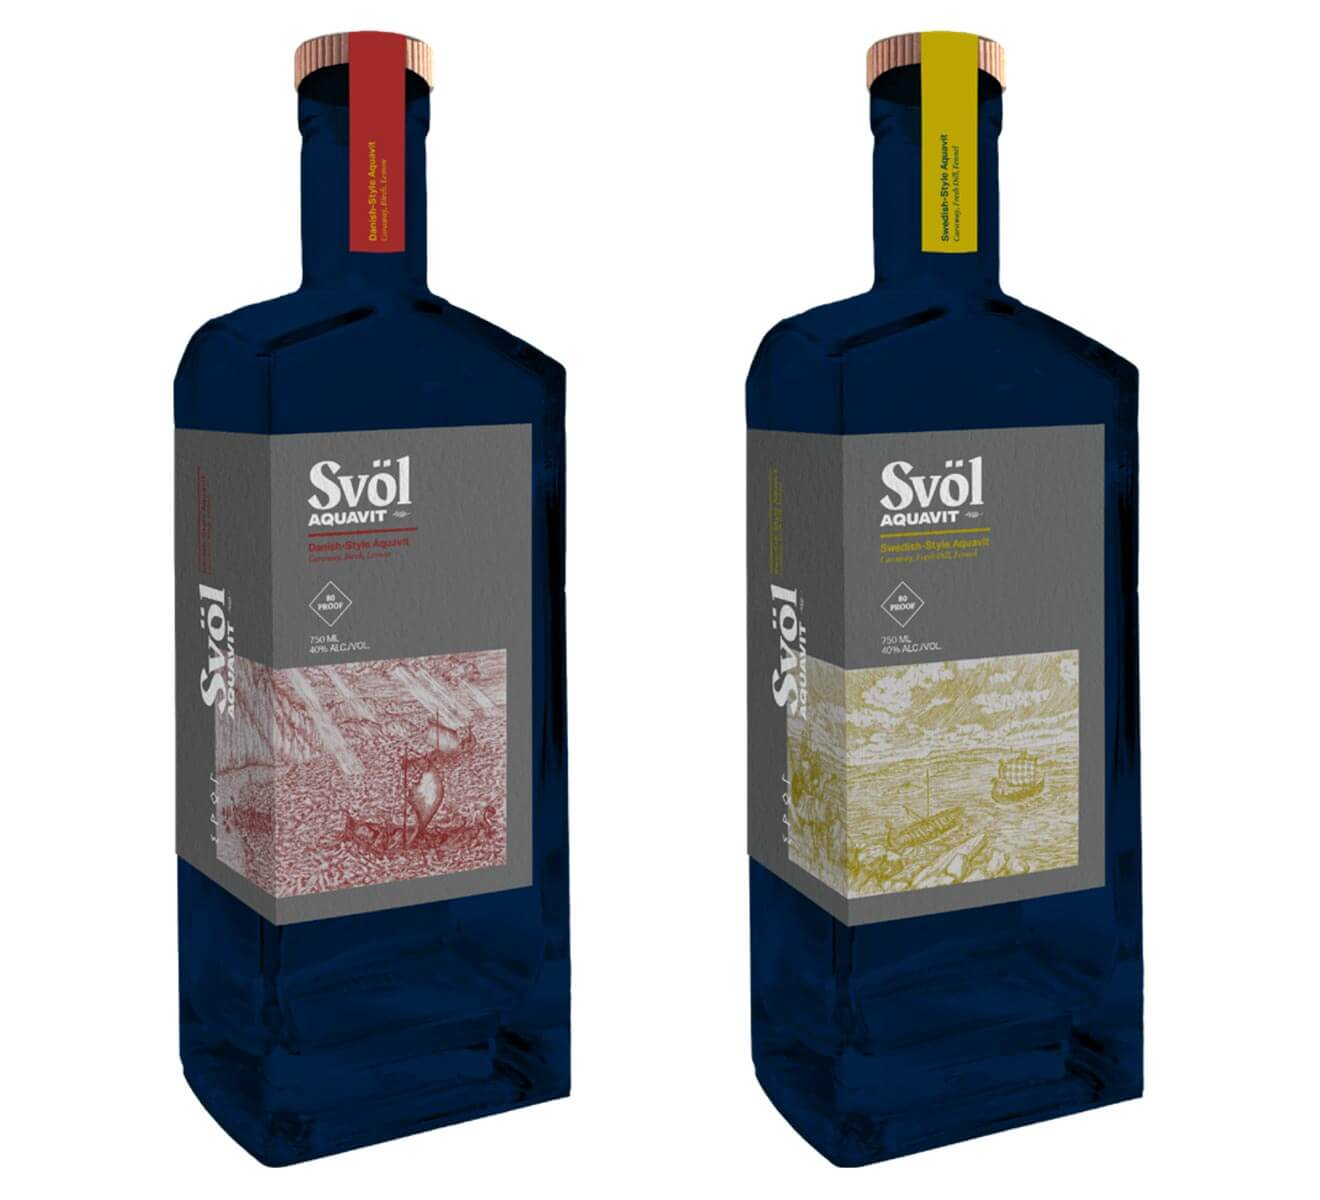 Svöl Aquavit Danish-Style and Swedish-Style bottles on white